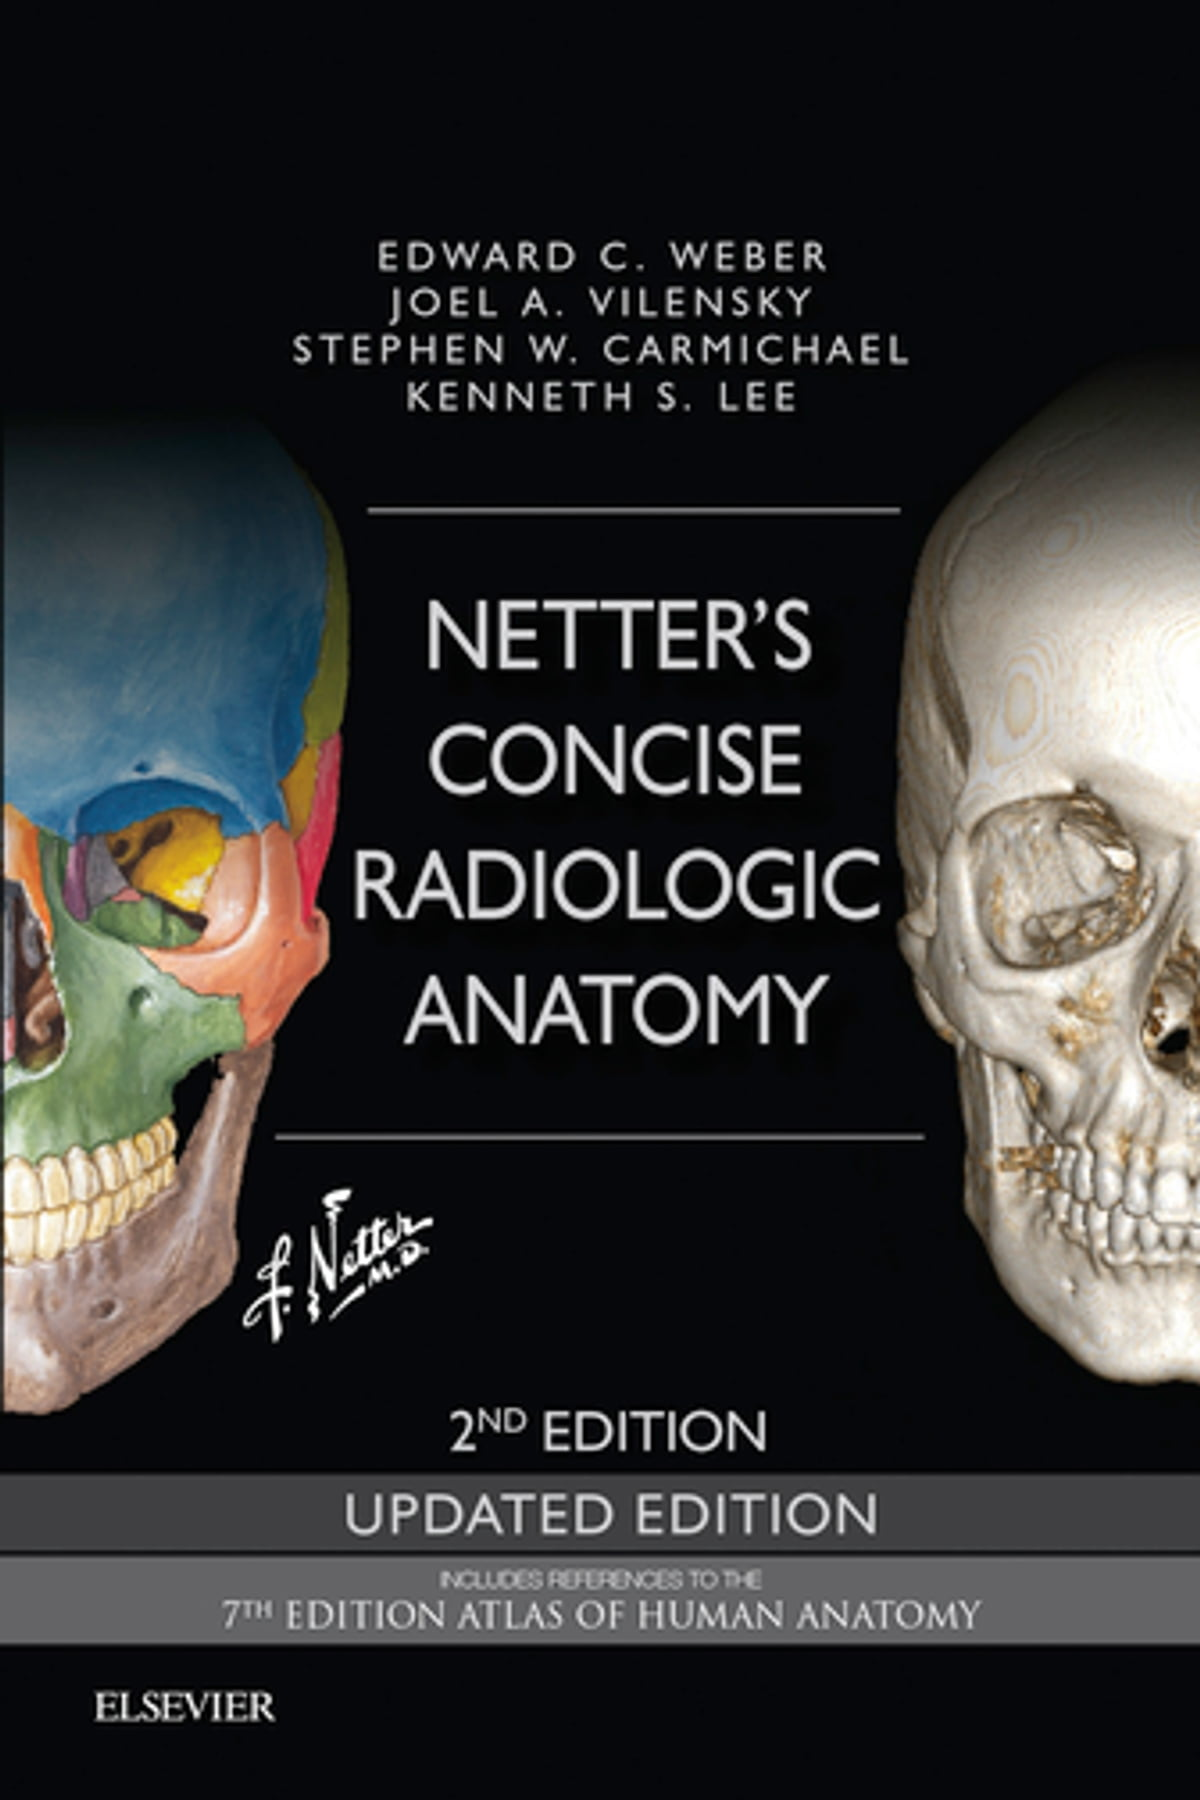 Netters Concise Radiologic Anatomy Updated Edition Ebook By Edward